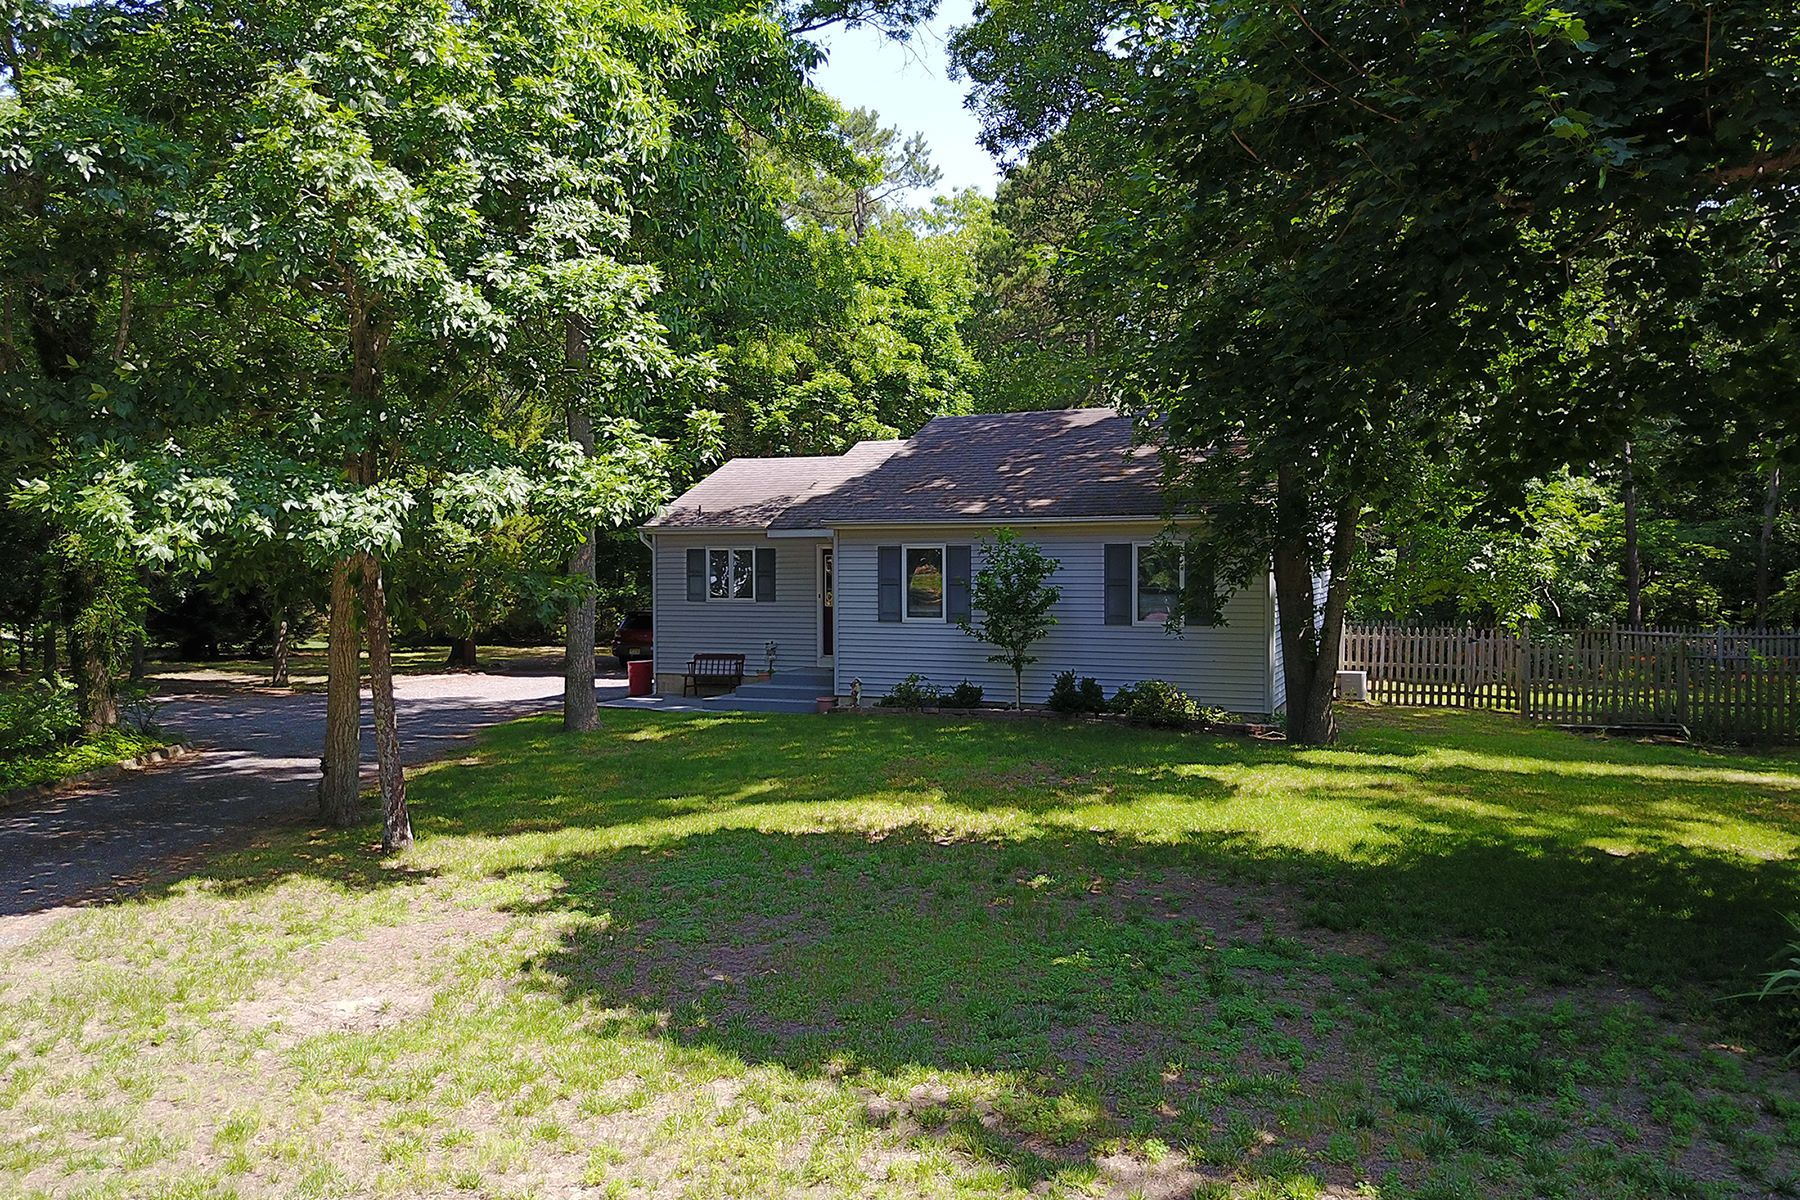 Single Family Home for Sale at Ideal Court House Rancher 112 Aspen Drive, Cape May Court House, New Jersey 08210 United States